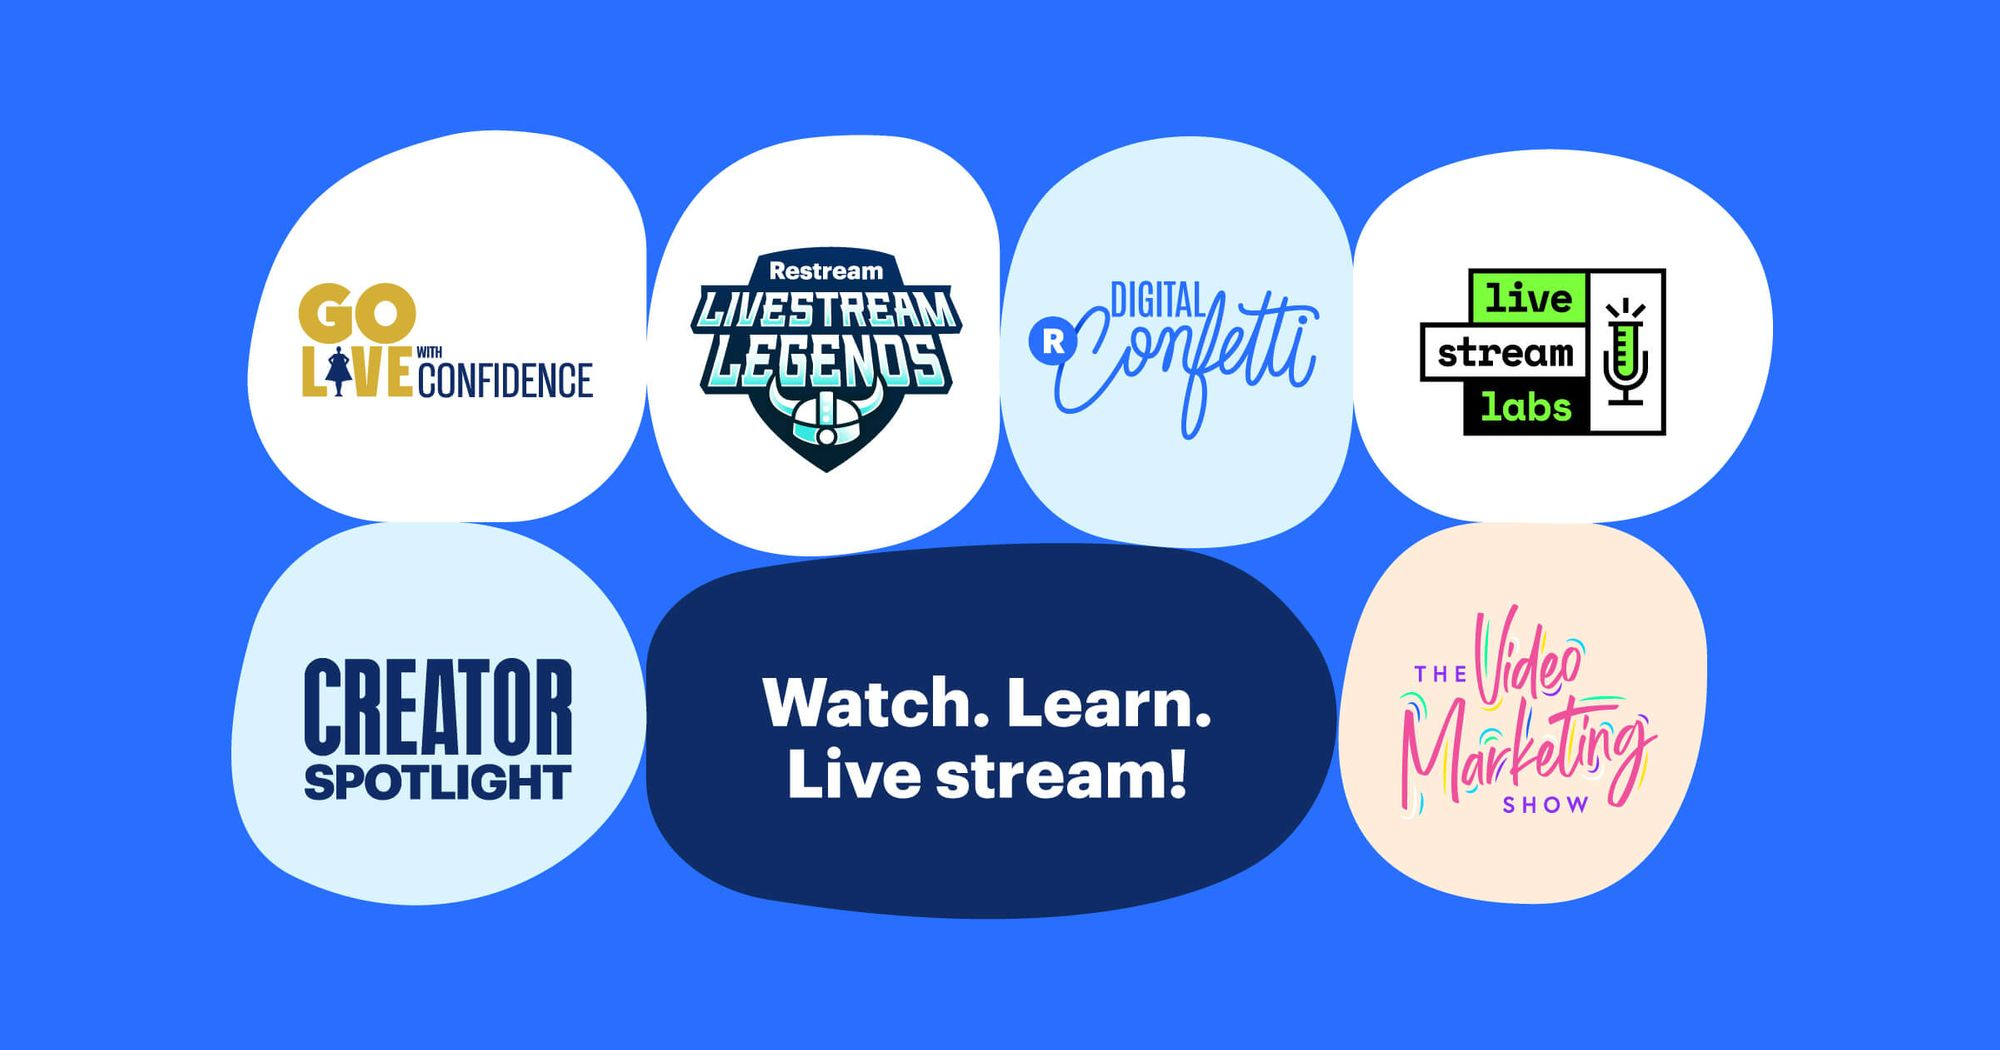 Live shows all about live streaming